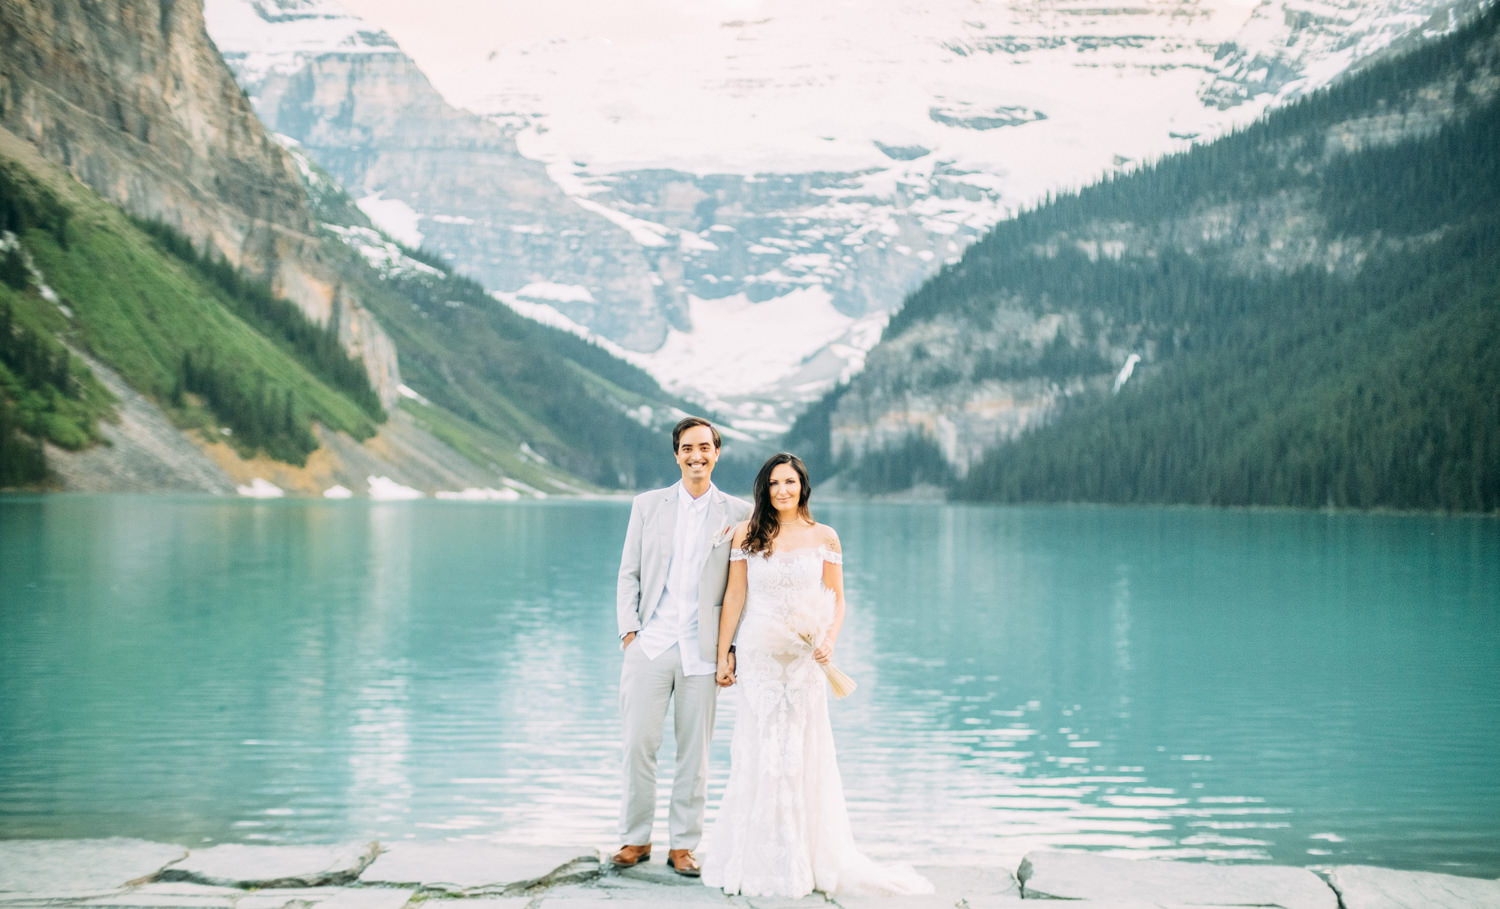 Lake Louise Elopement Wedding Photographer